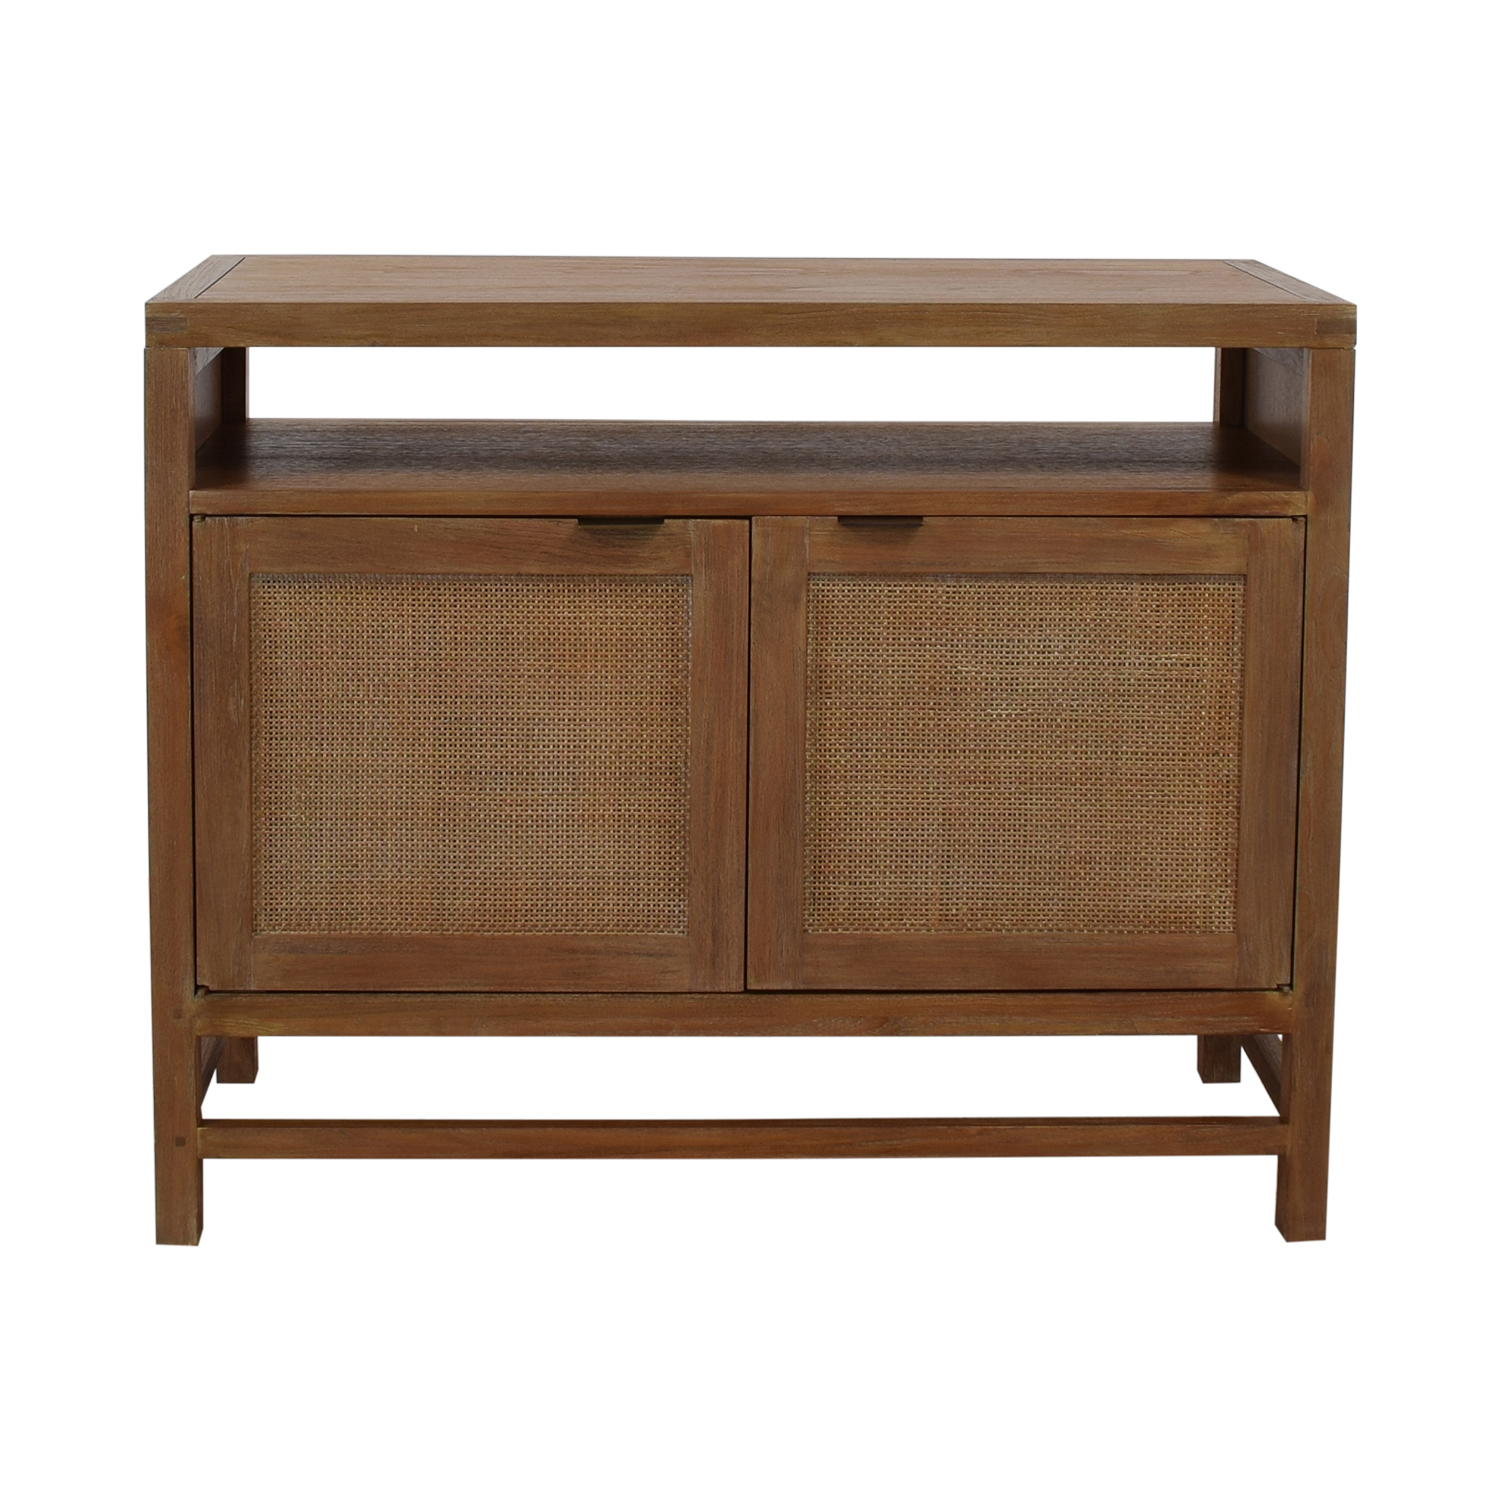 Crate & Barrel Crate & Barrel Blake Entertainment Console second hand